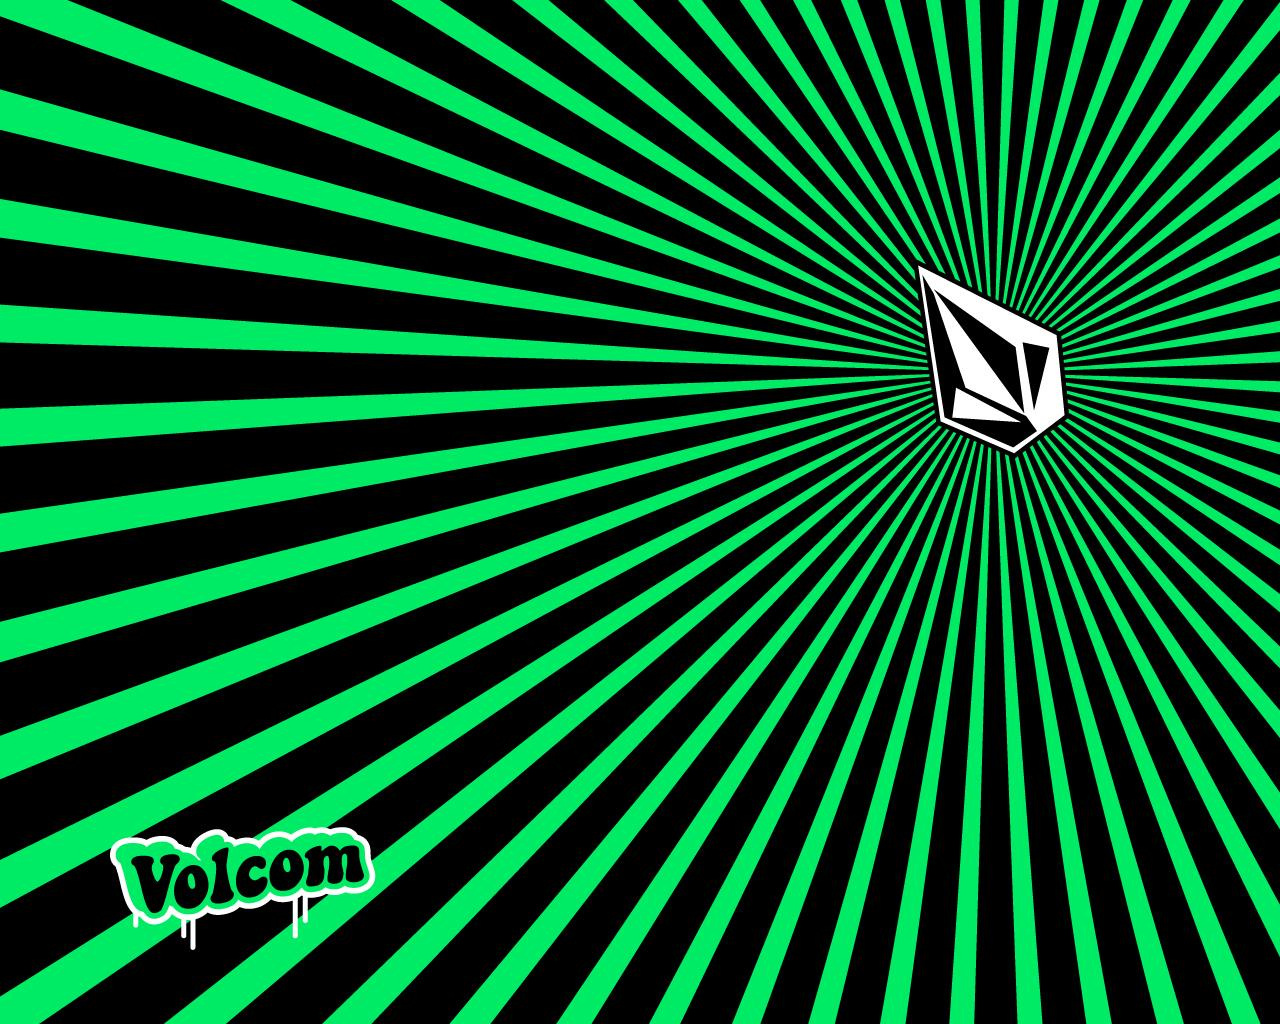 1280x1024 - Volcom Backgrounds 12